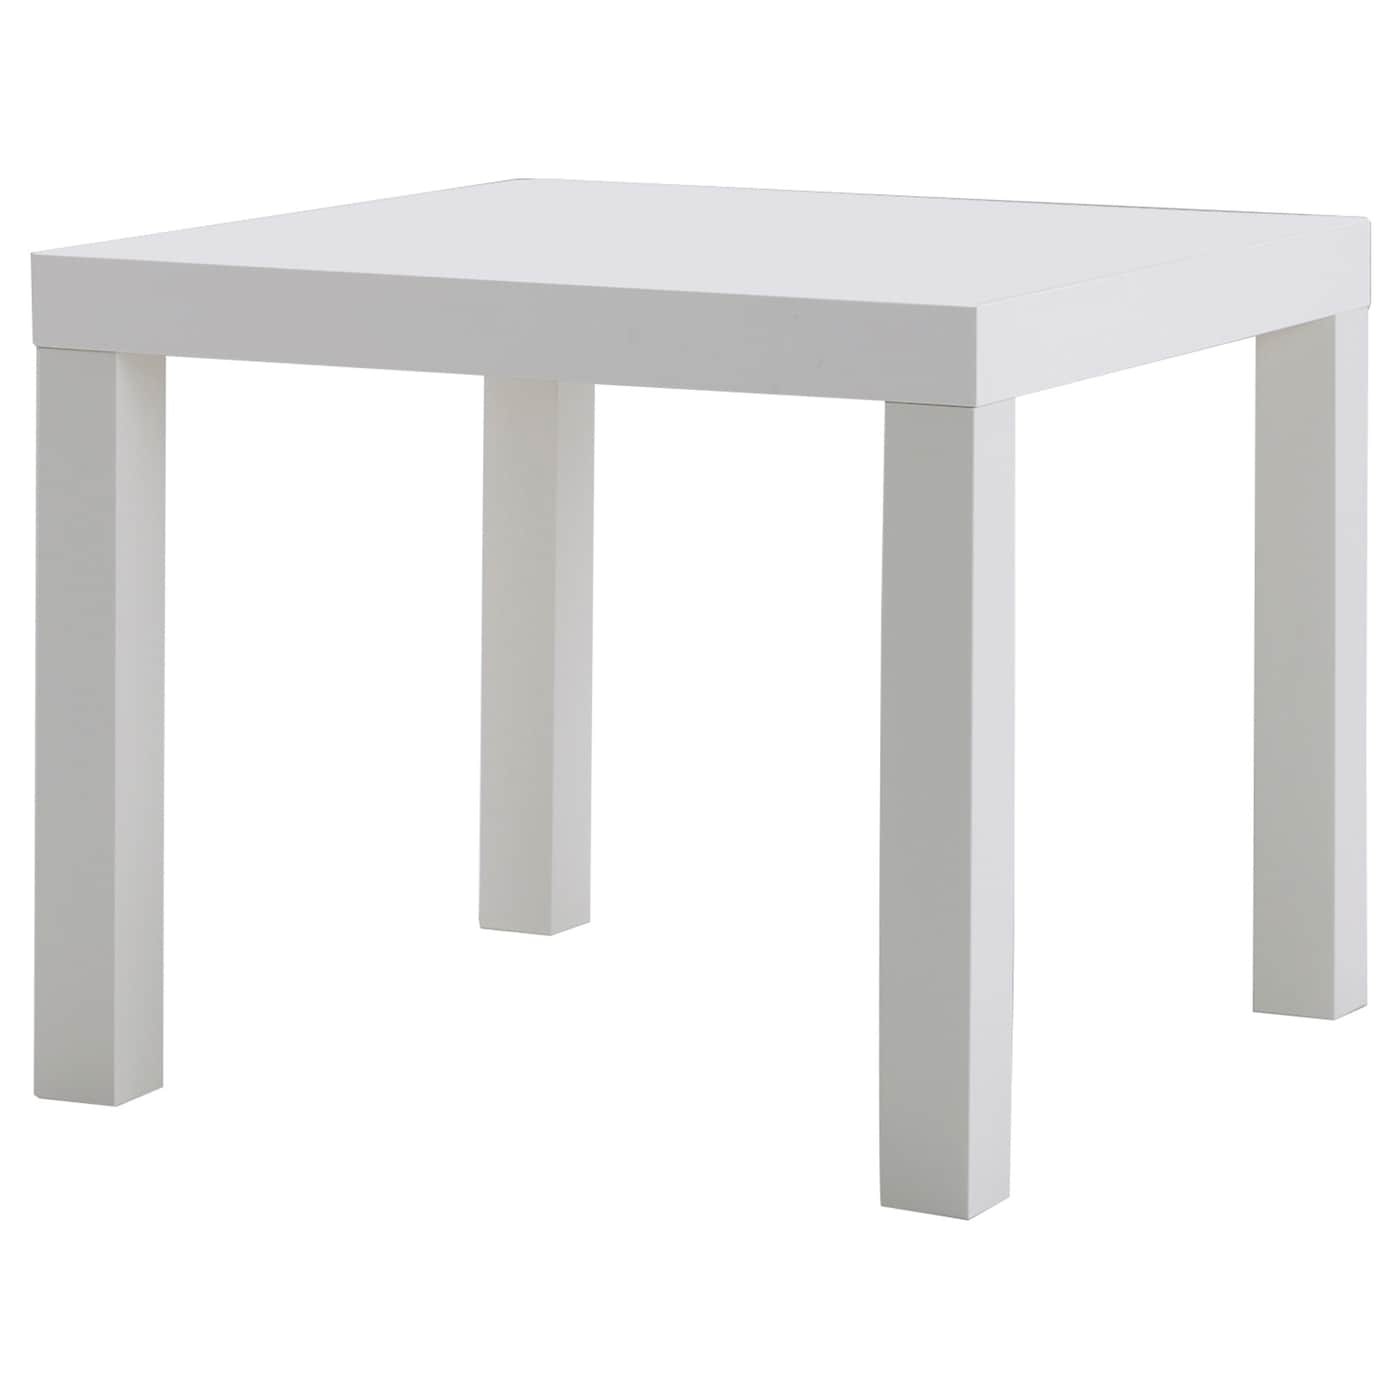 IKEA LACK side table Easy to assemble. Low weight; easy to move.